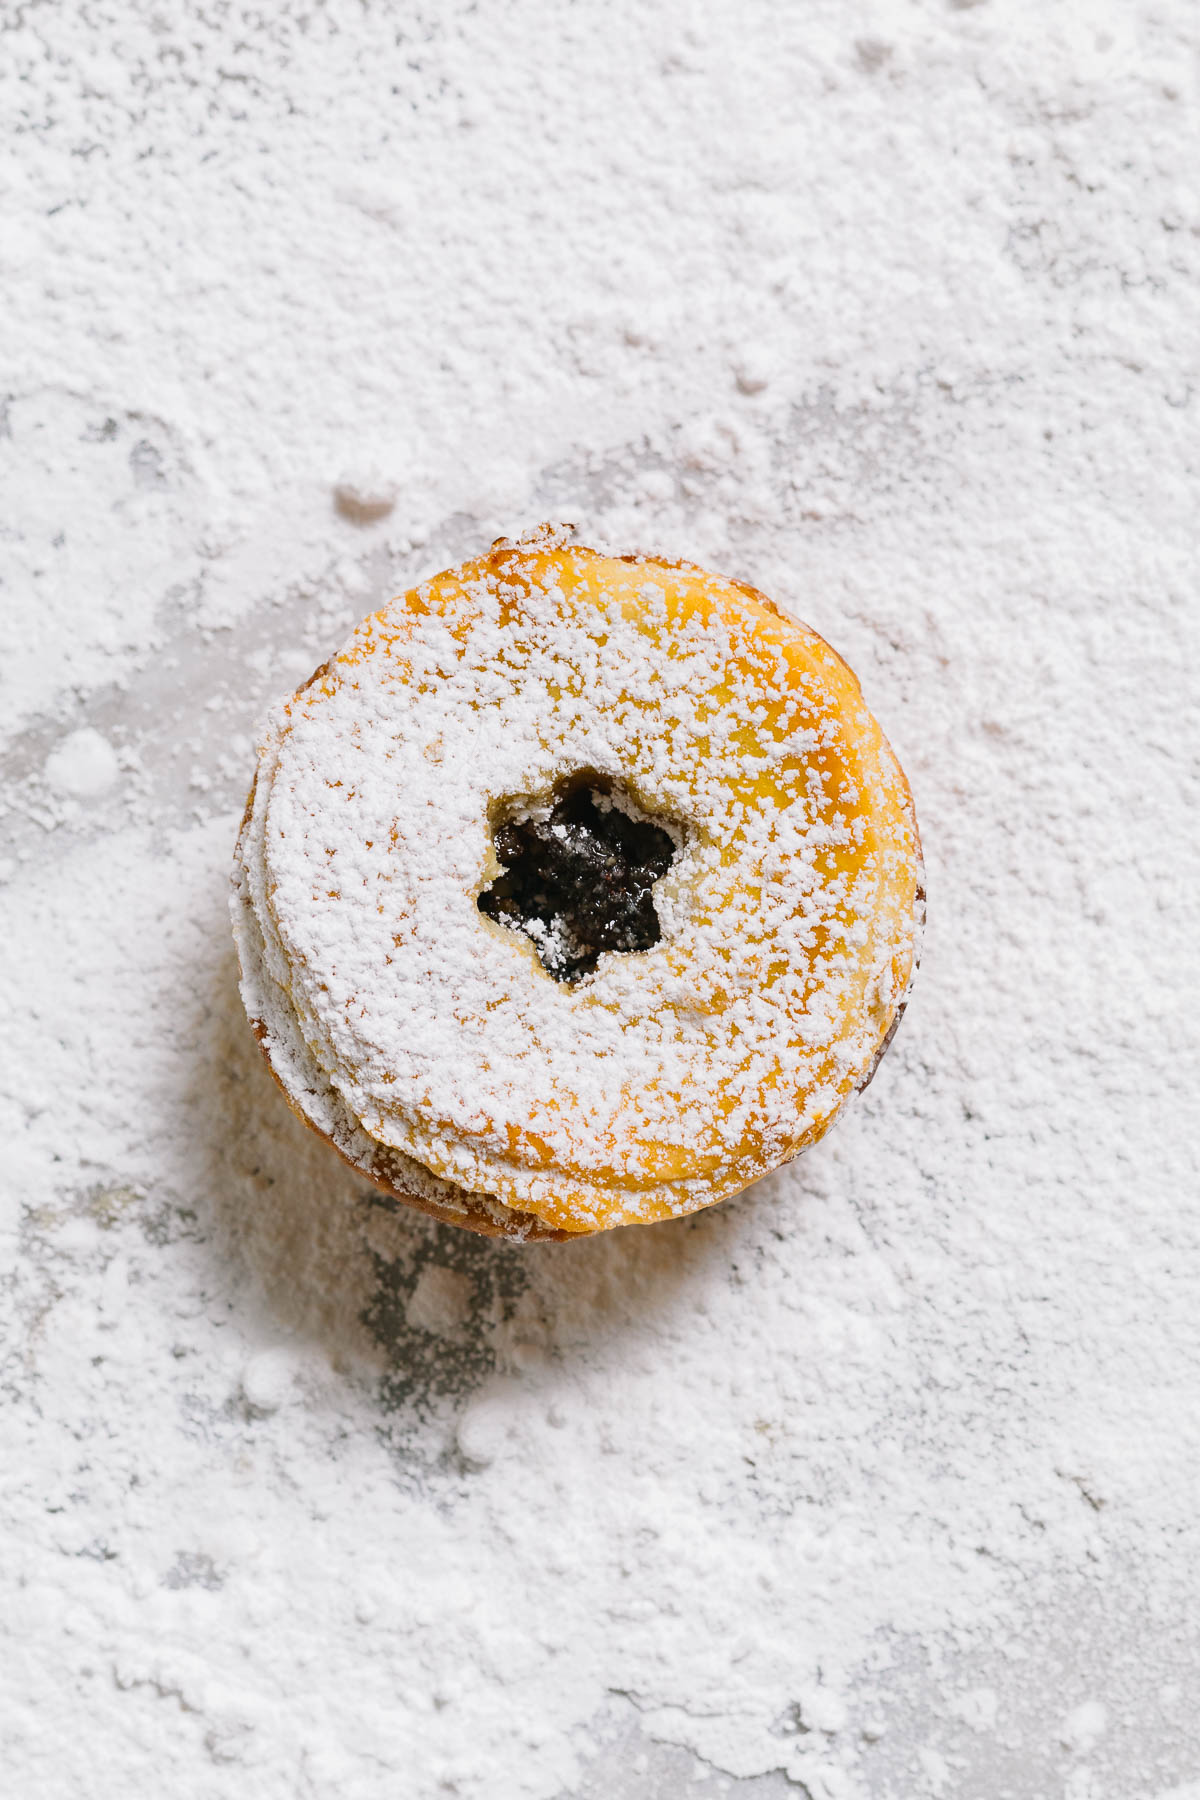 One tart with powdered sugar sprinkled on it.